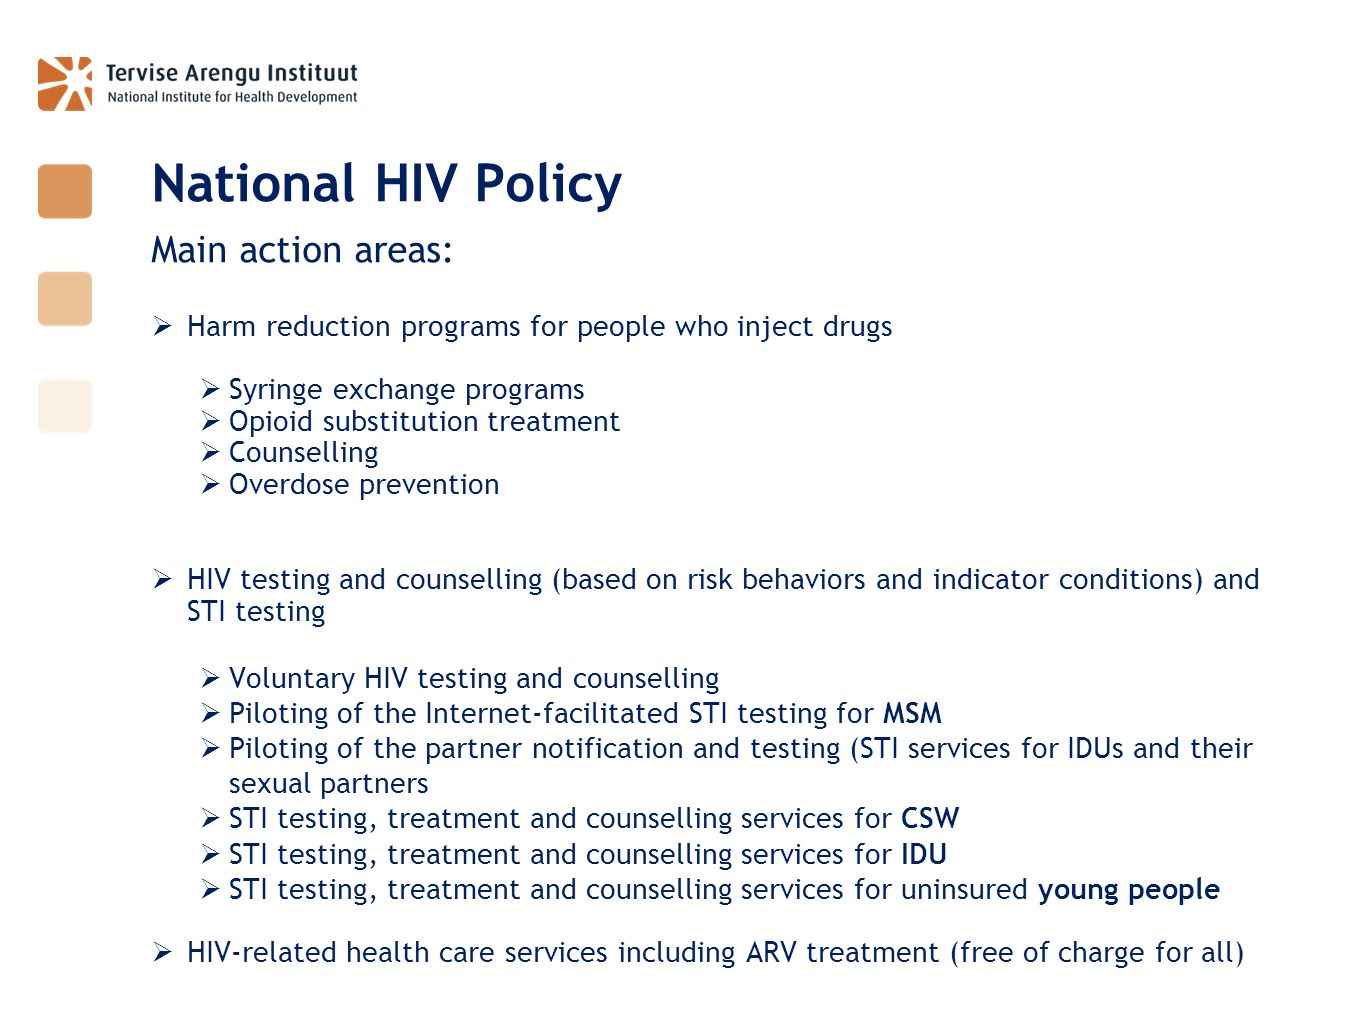 National HIV Policy Main action areas: